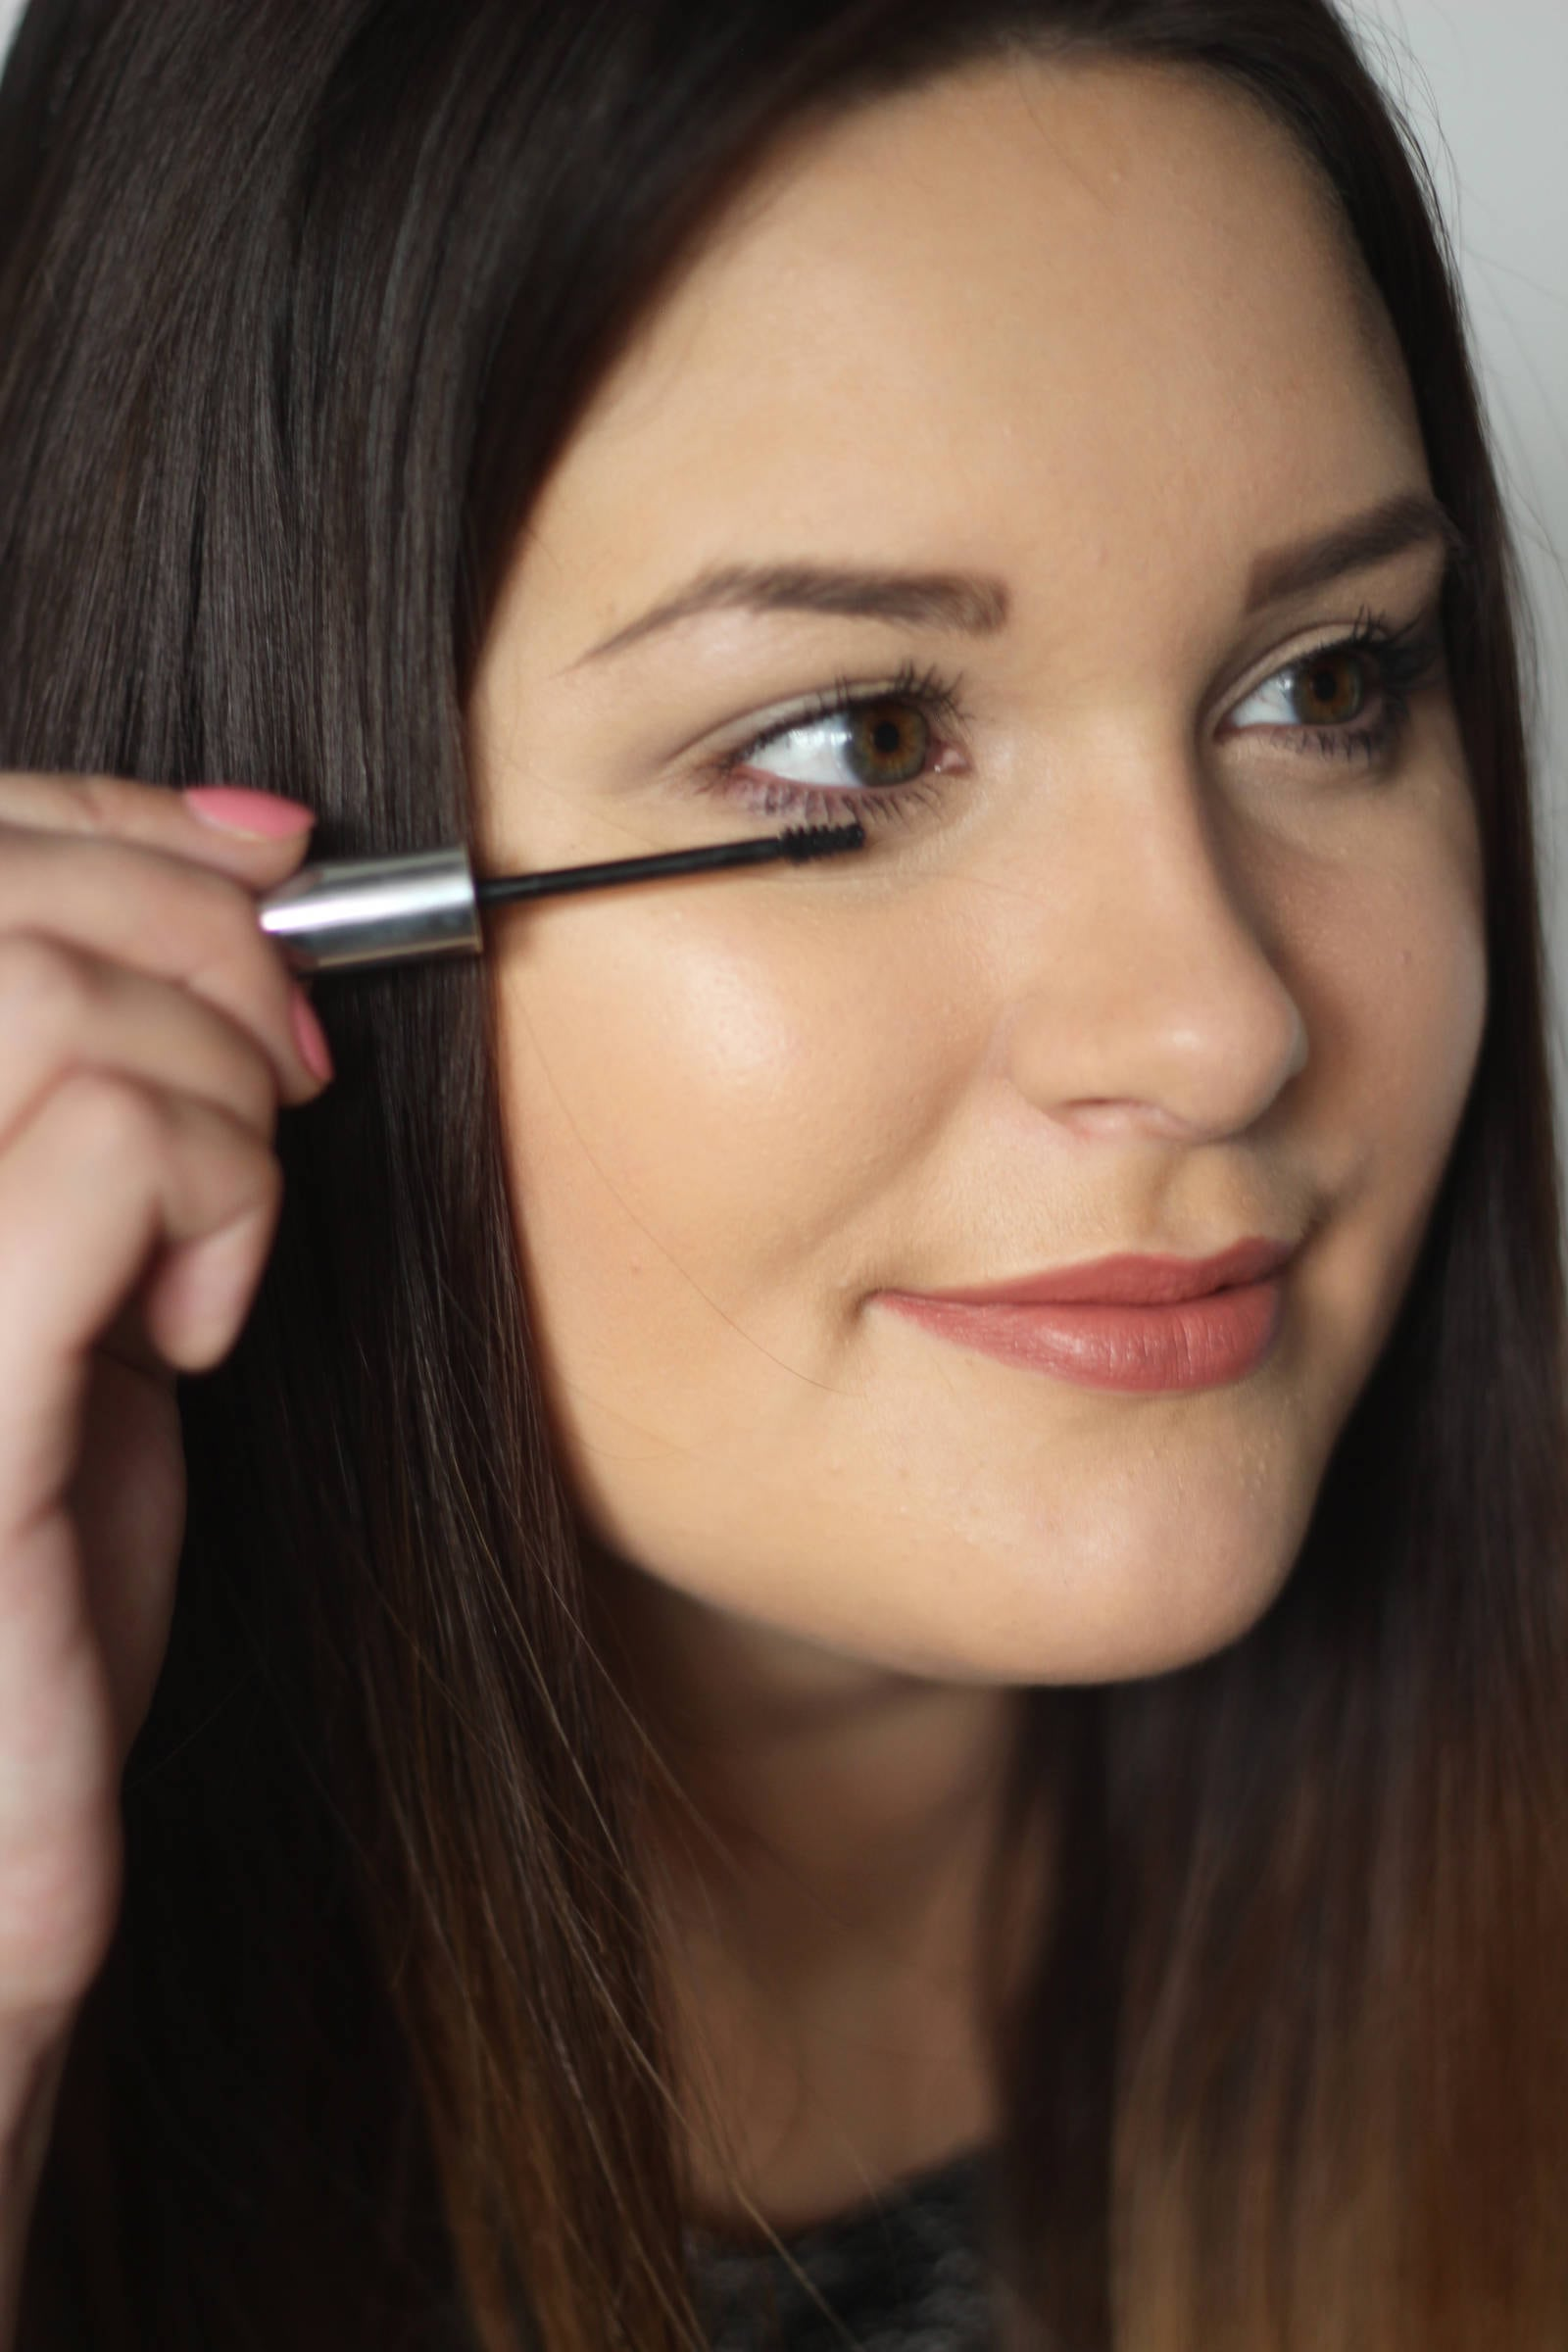 How to fake bigger eyes with makeup |  Mash elle beauty blogger | how to make your eyes look bigger | wide eyes makeup | makeup tutorial